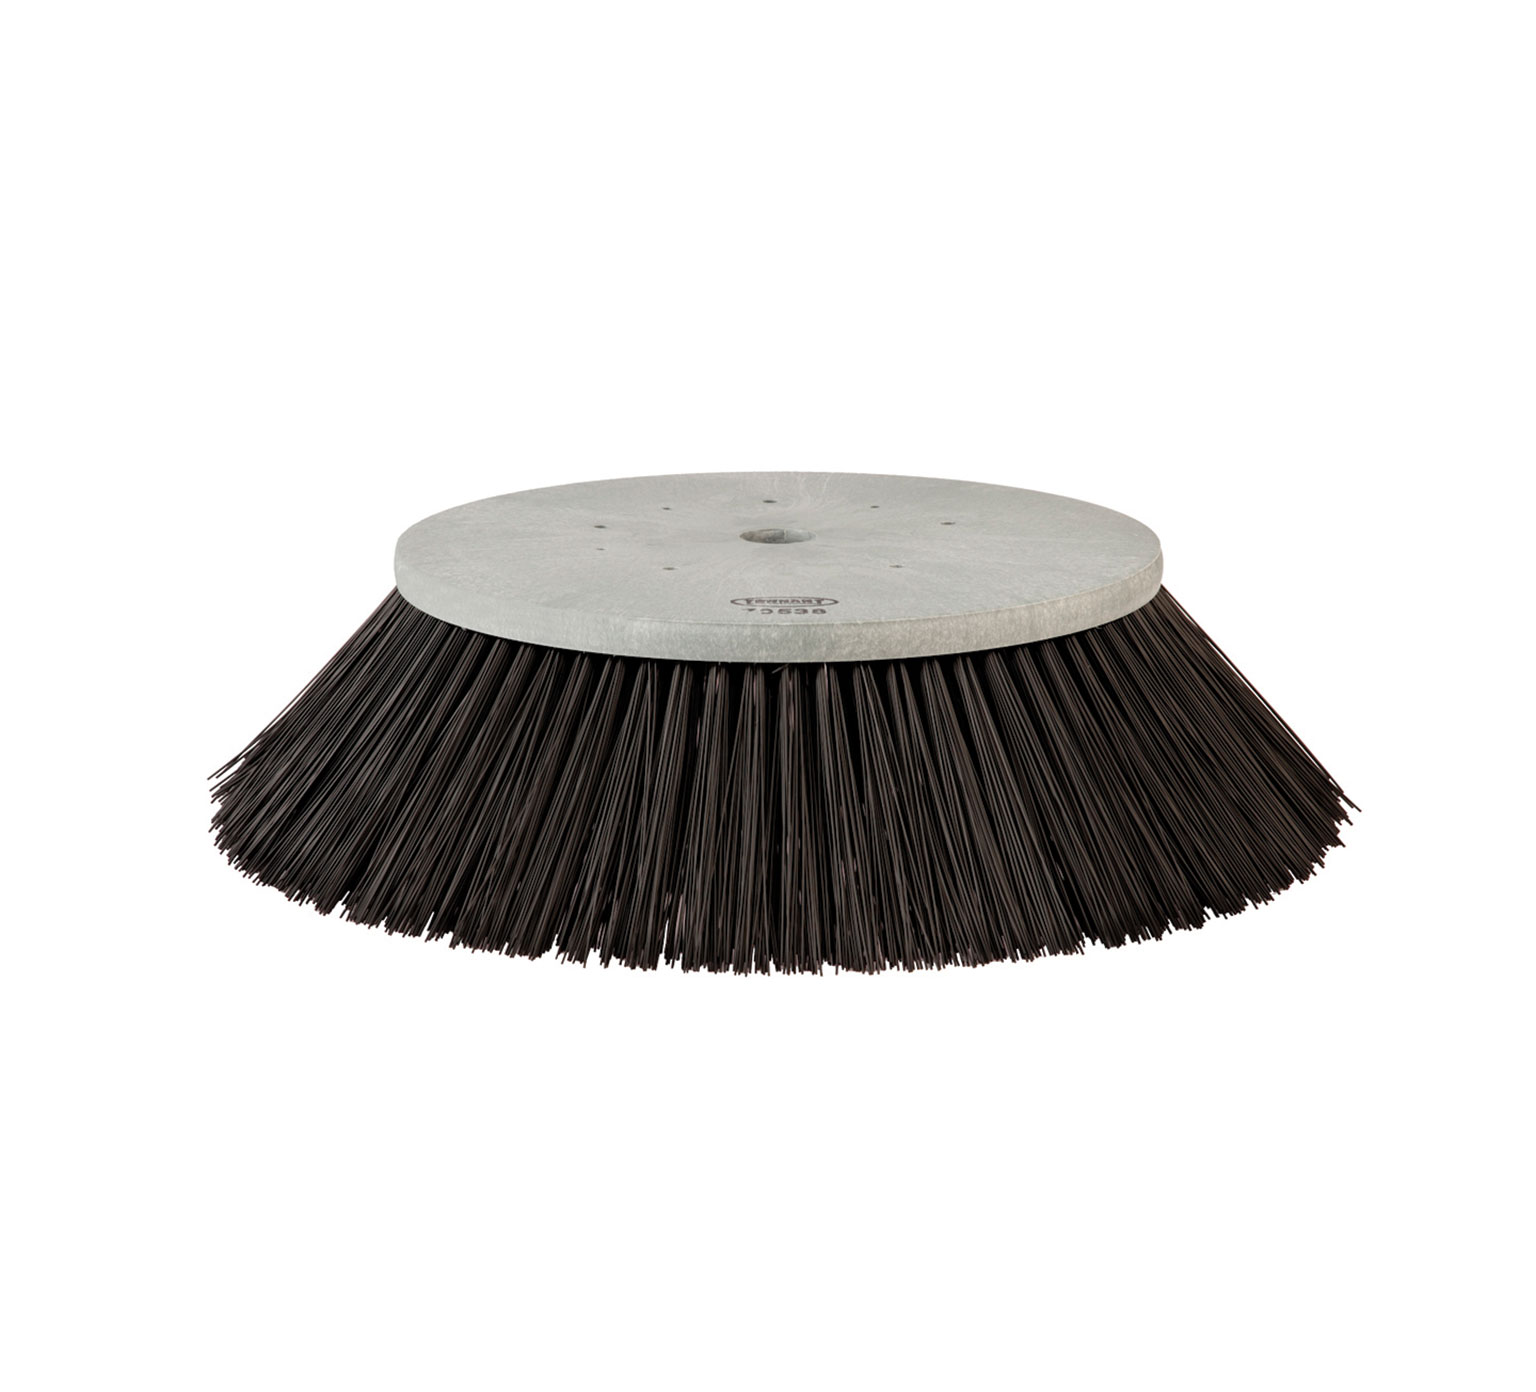 70538 Polypropylene Disk Sweep Brush – 26 in / 660 mm alt 1